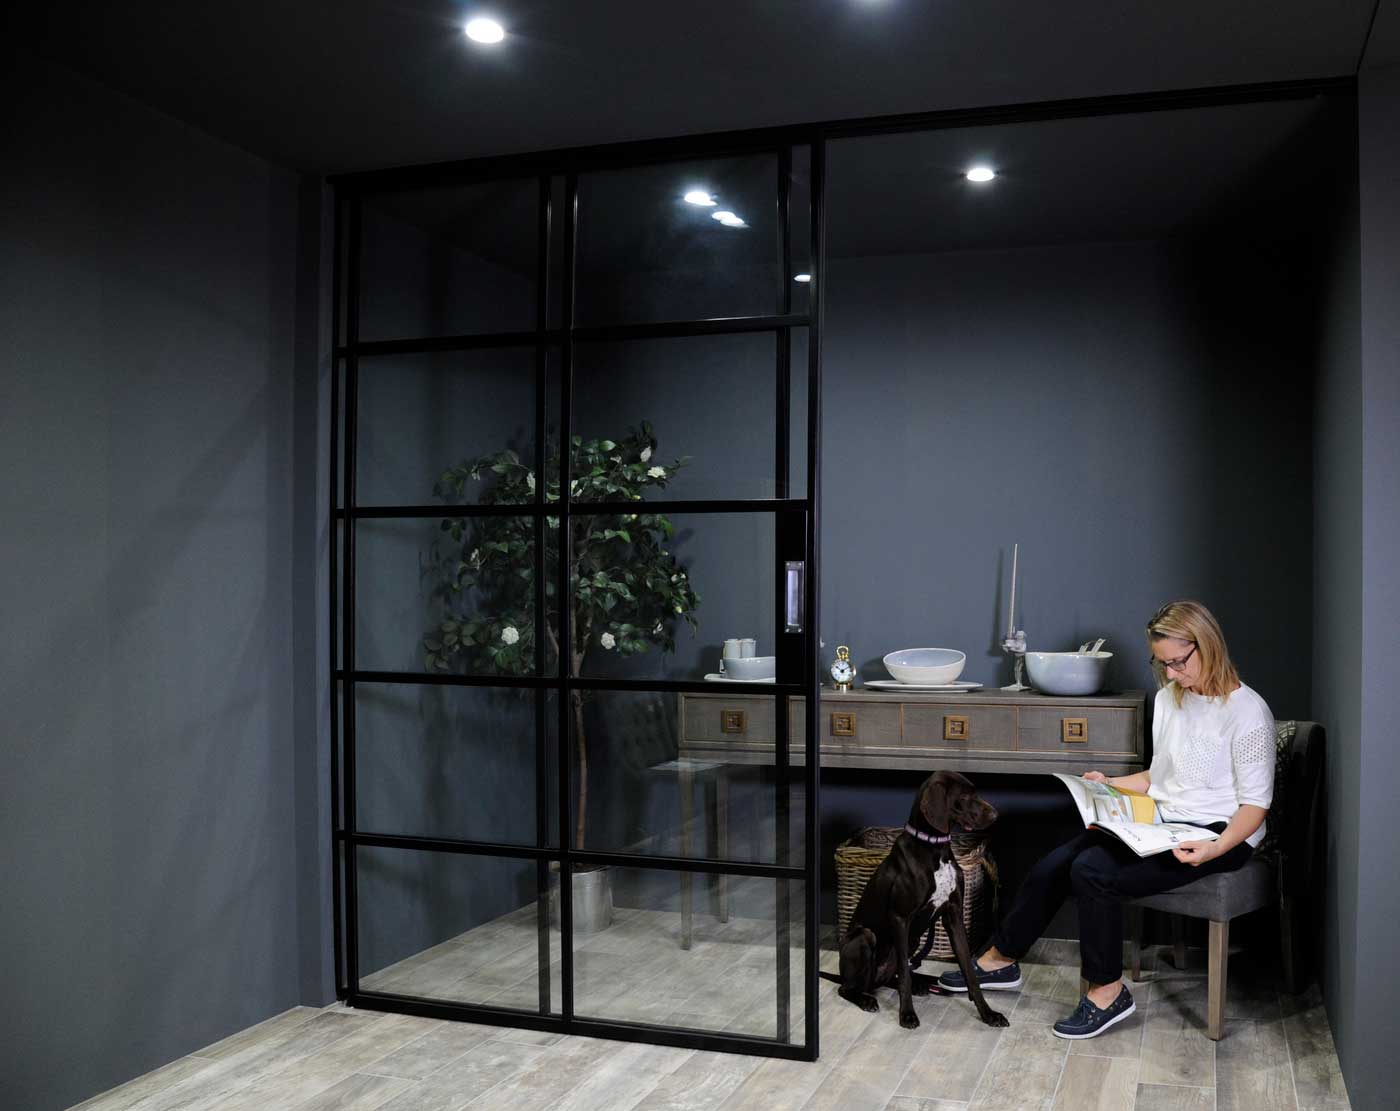 The best way to create light and space in your home or office – the new Crittall InnerVision glazed walls